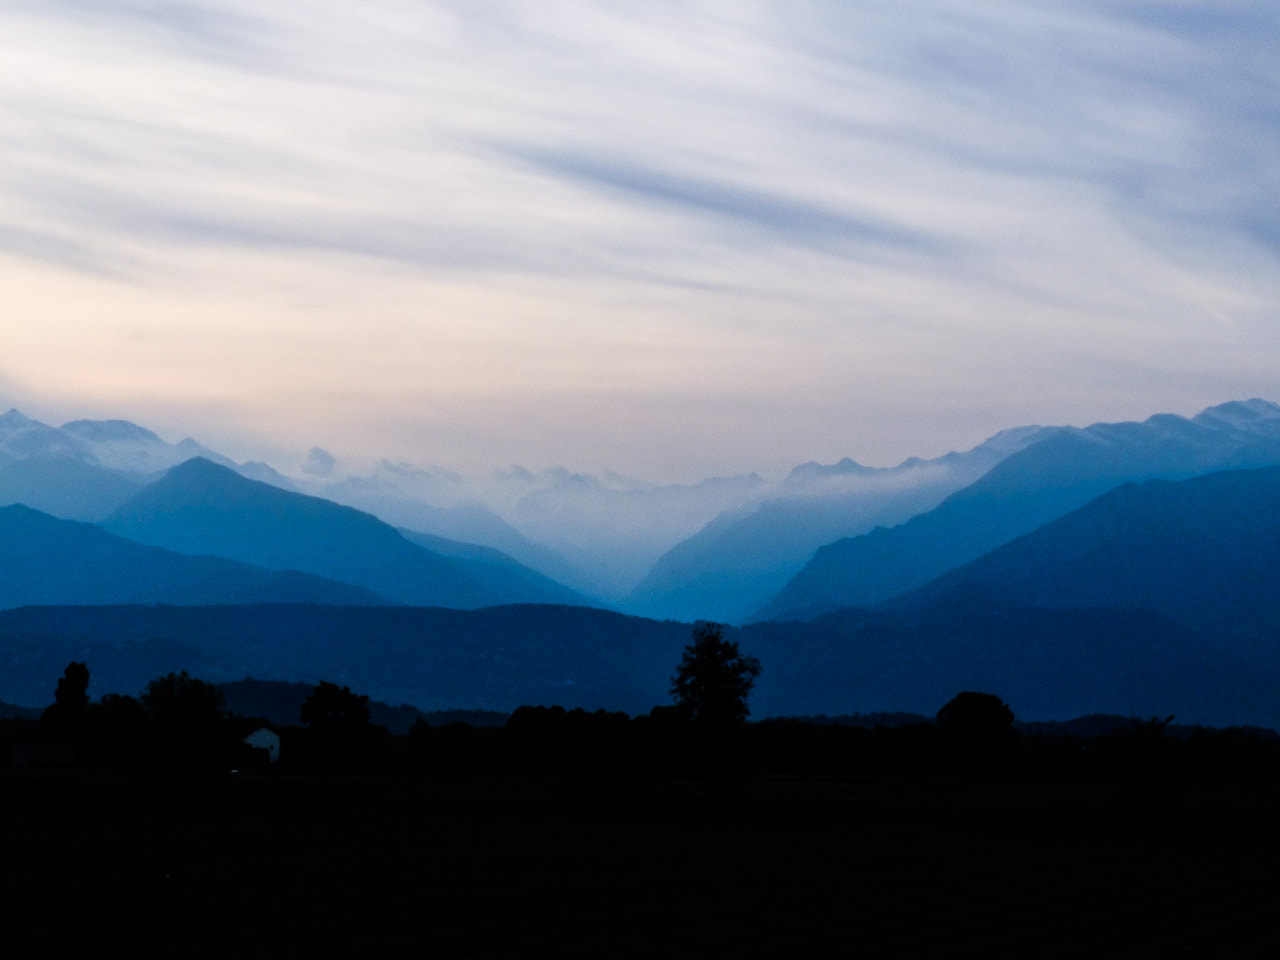 Photograph Morning on the Alpes. by Christophe SIMONNEAU on 500px